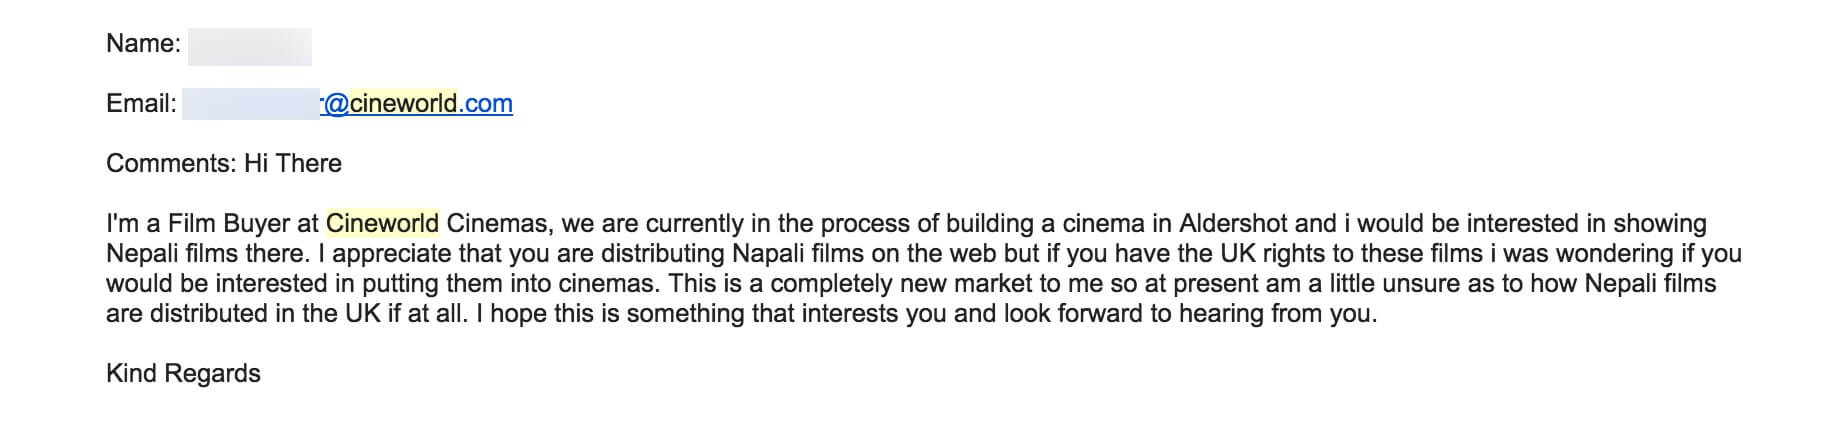 Film Buyer Cineworld for Nepali Movies